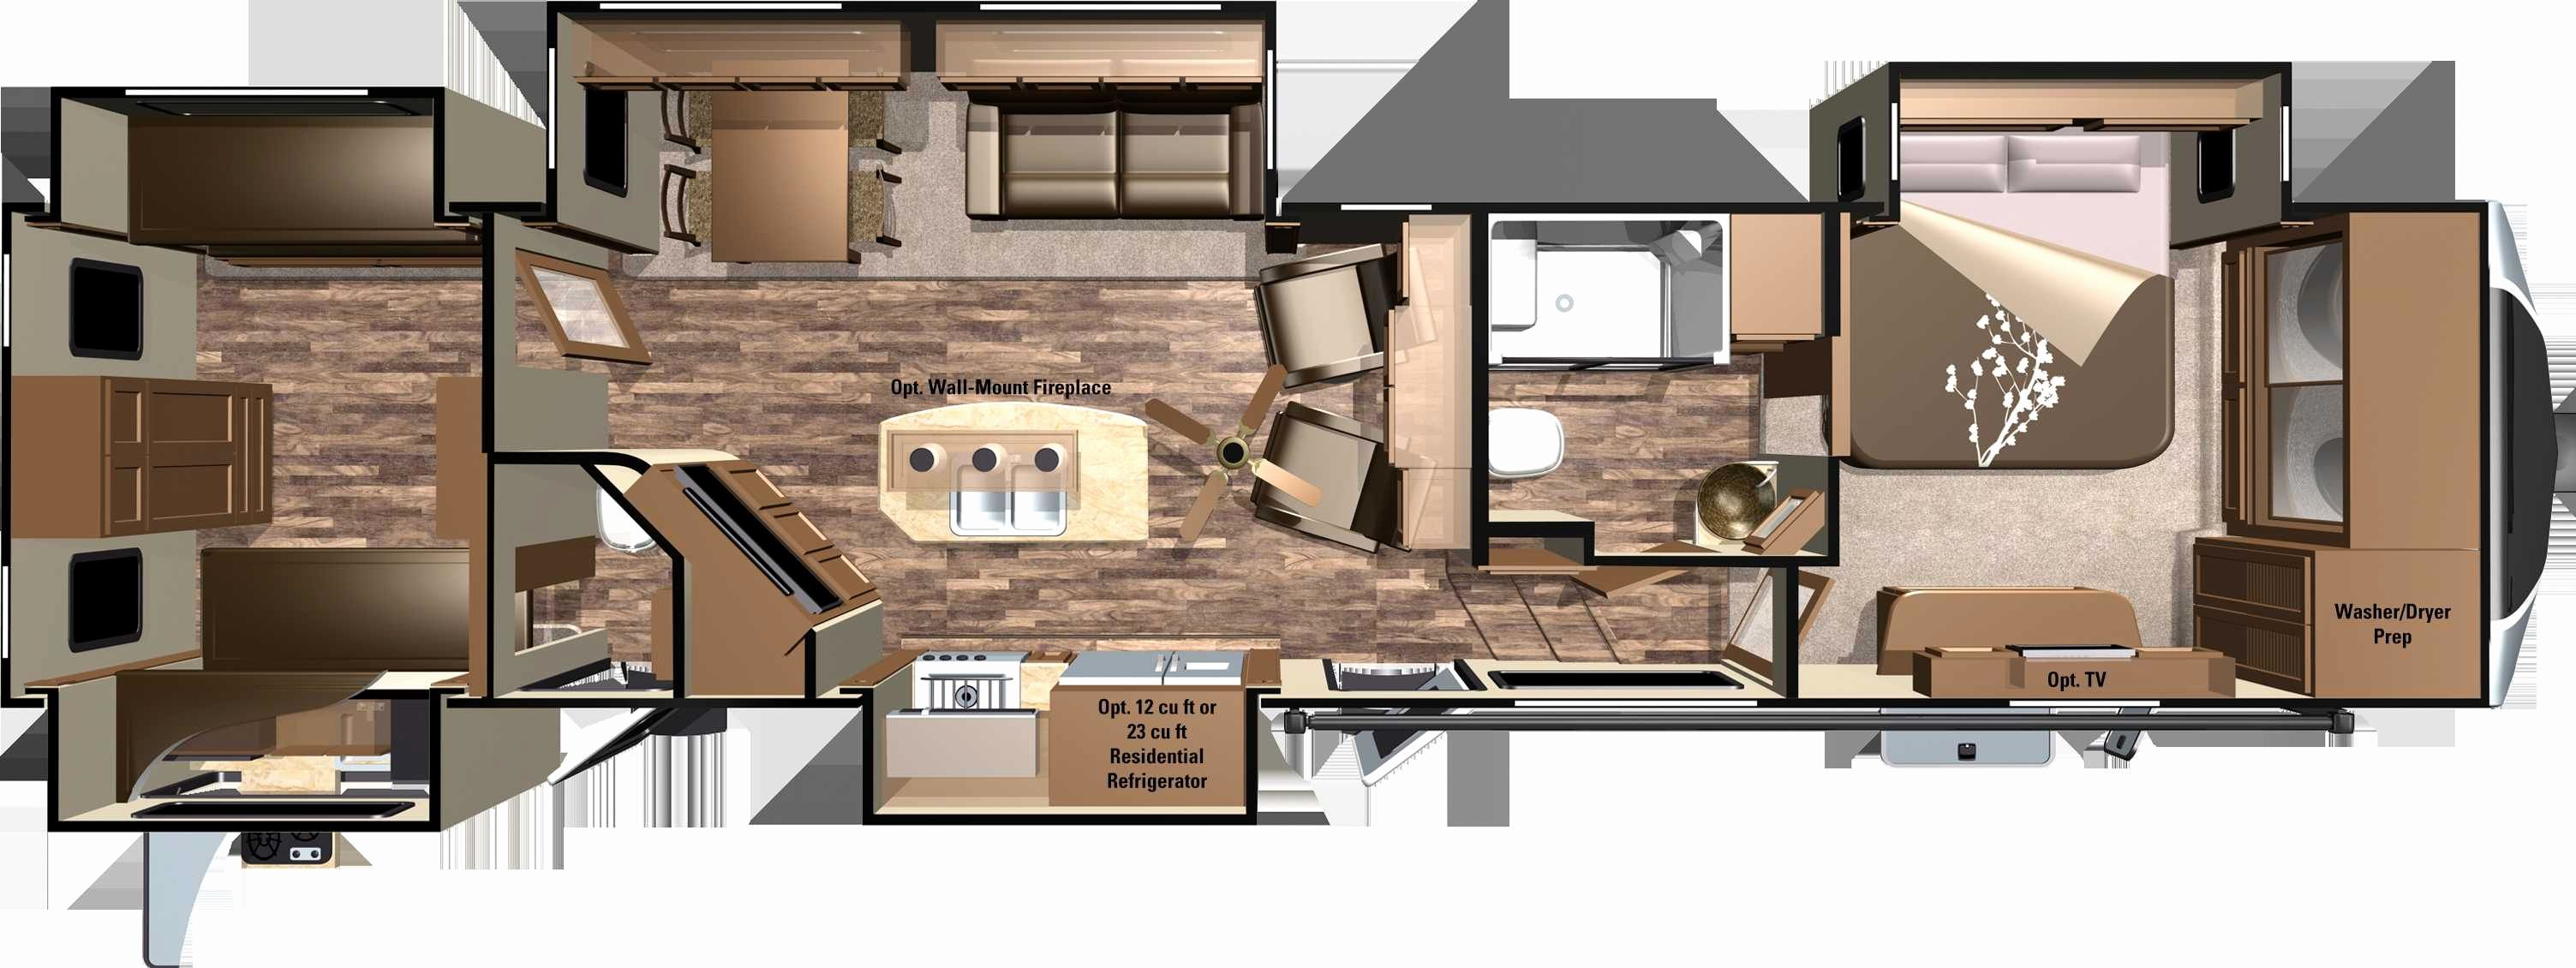 Https Cia2online Com Images 2018 05 Two Bedroom Rv Floor Plans